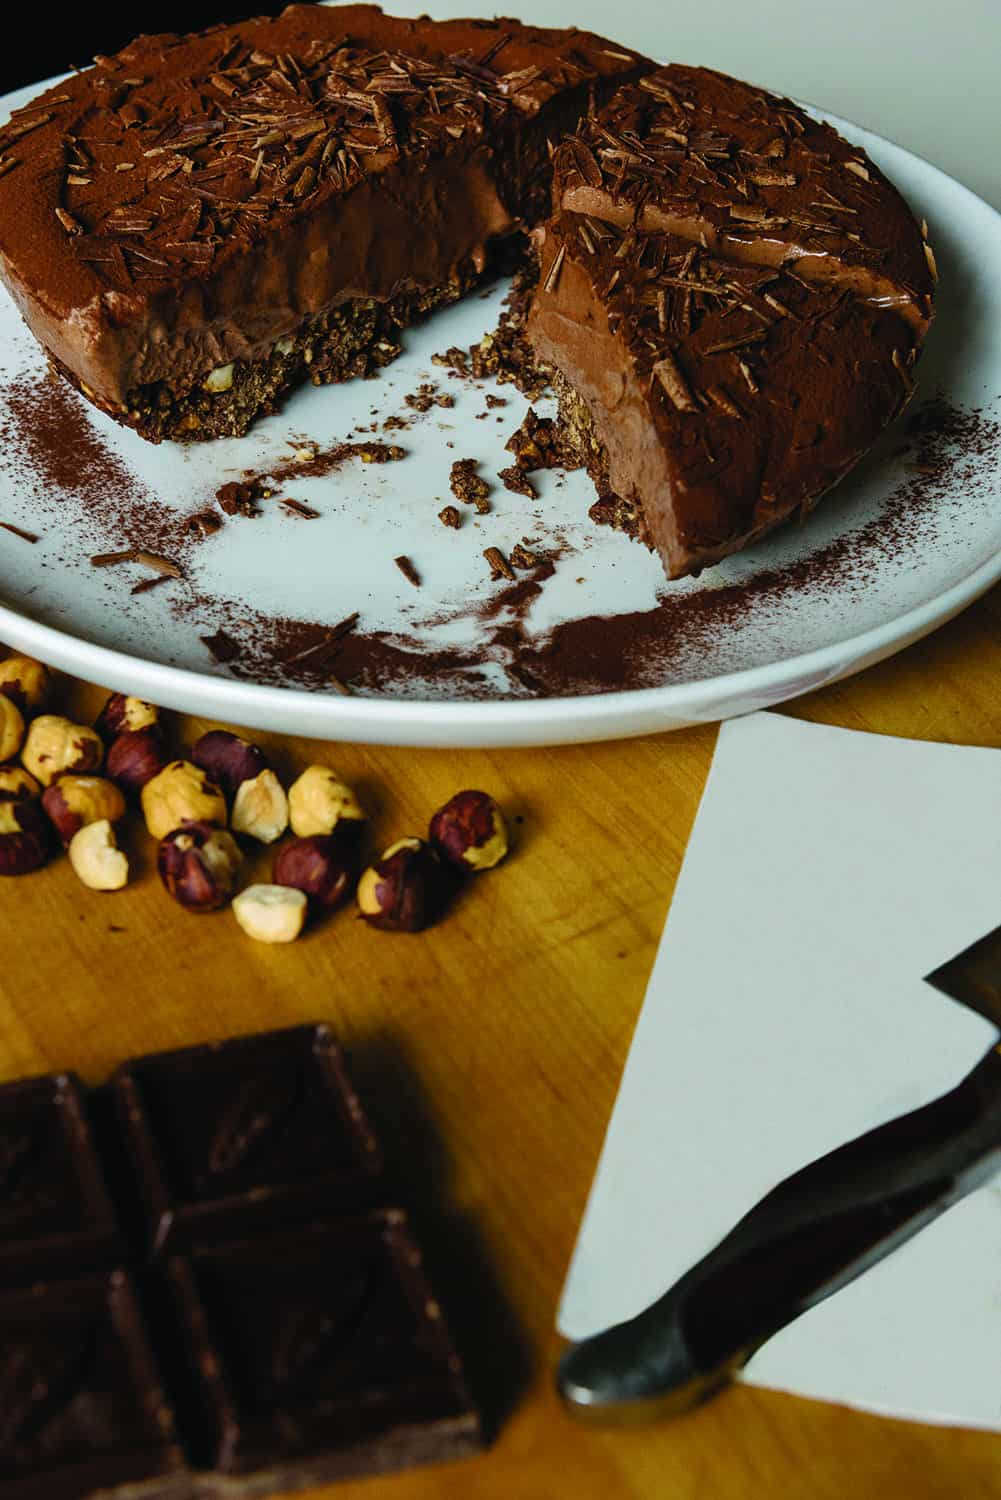 Chocolate Hazelnut Semifreddo in a Cinnamon Chocolate Crust